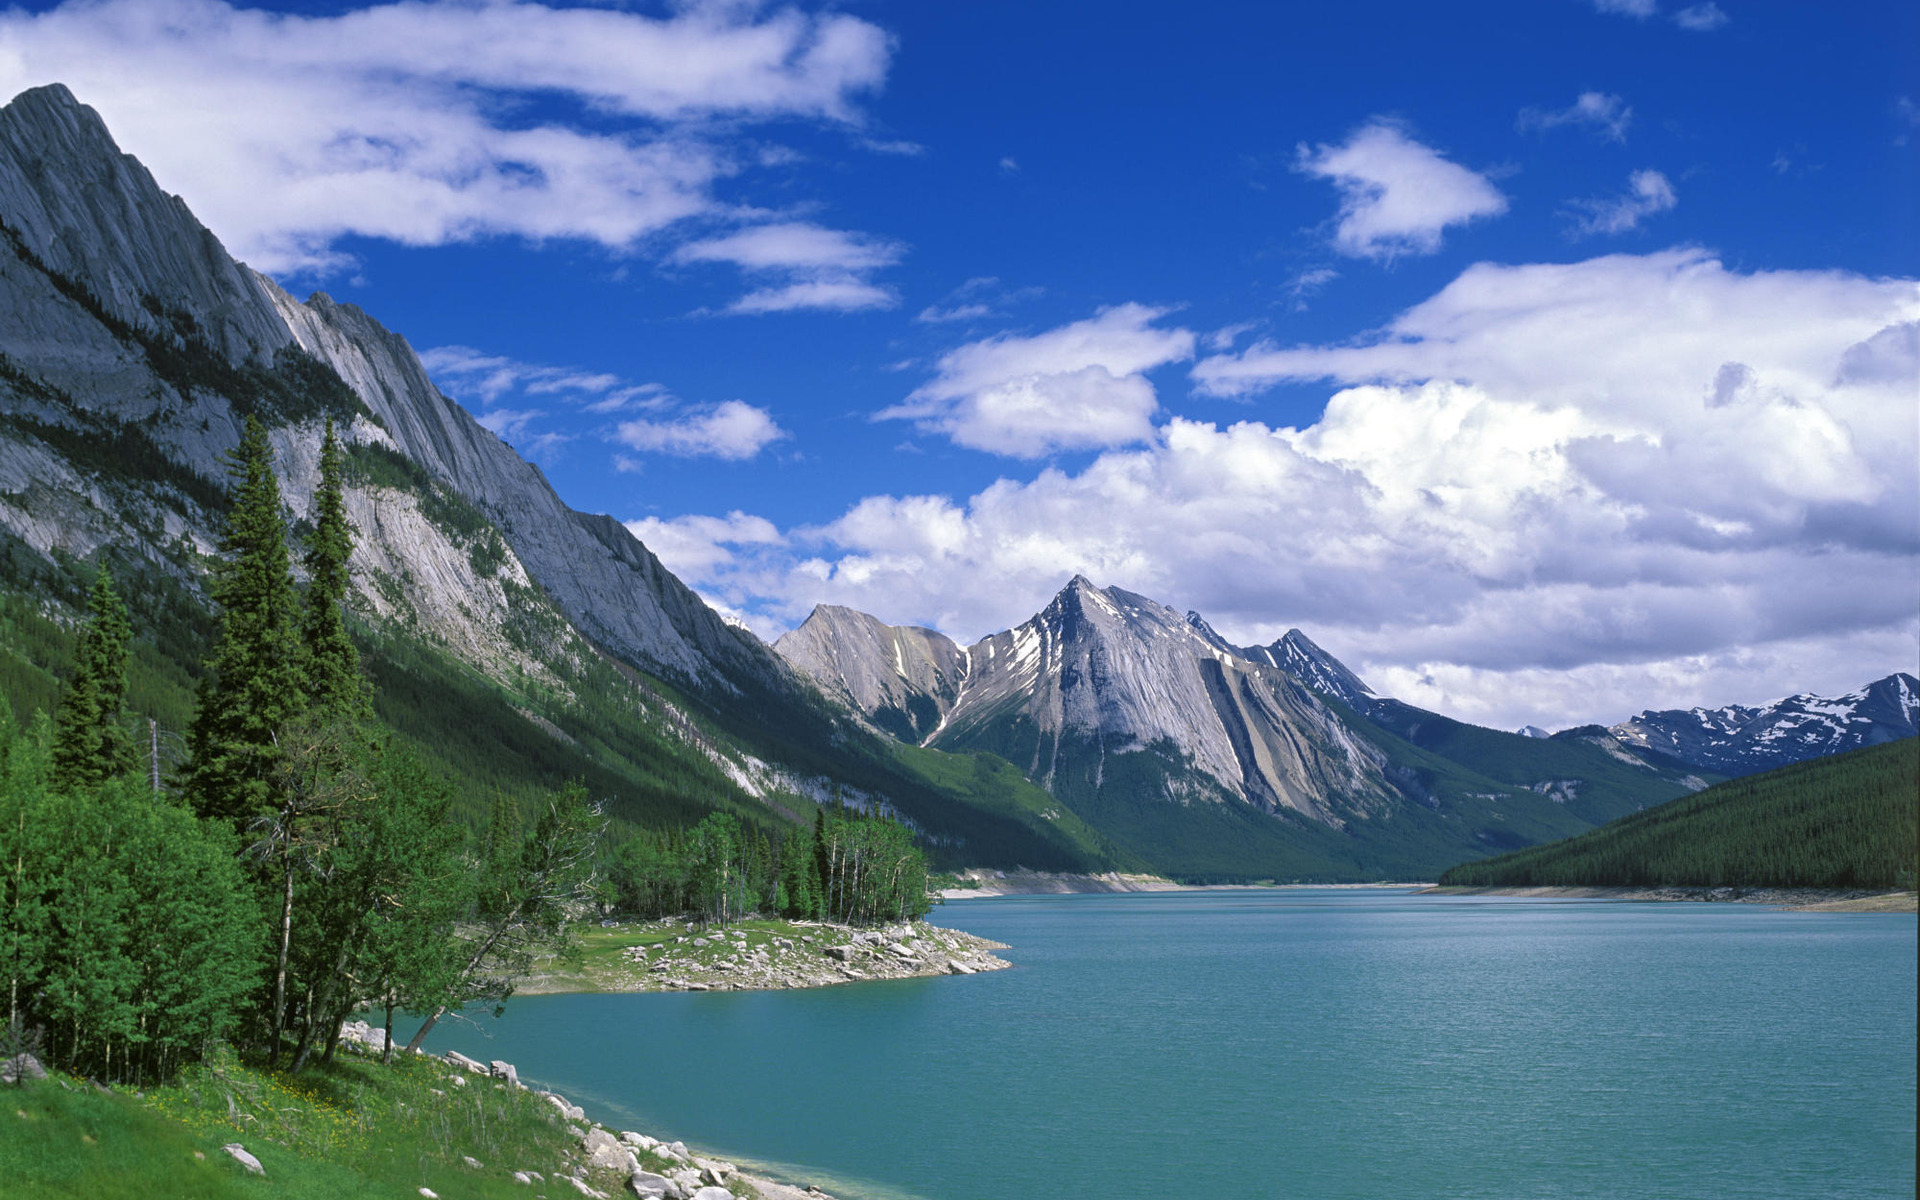 48100 download wallpaper Landscape, Nature, Mountains, Lakes screensavers and pictures for free